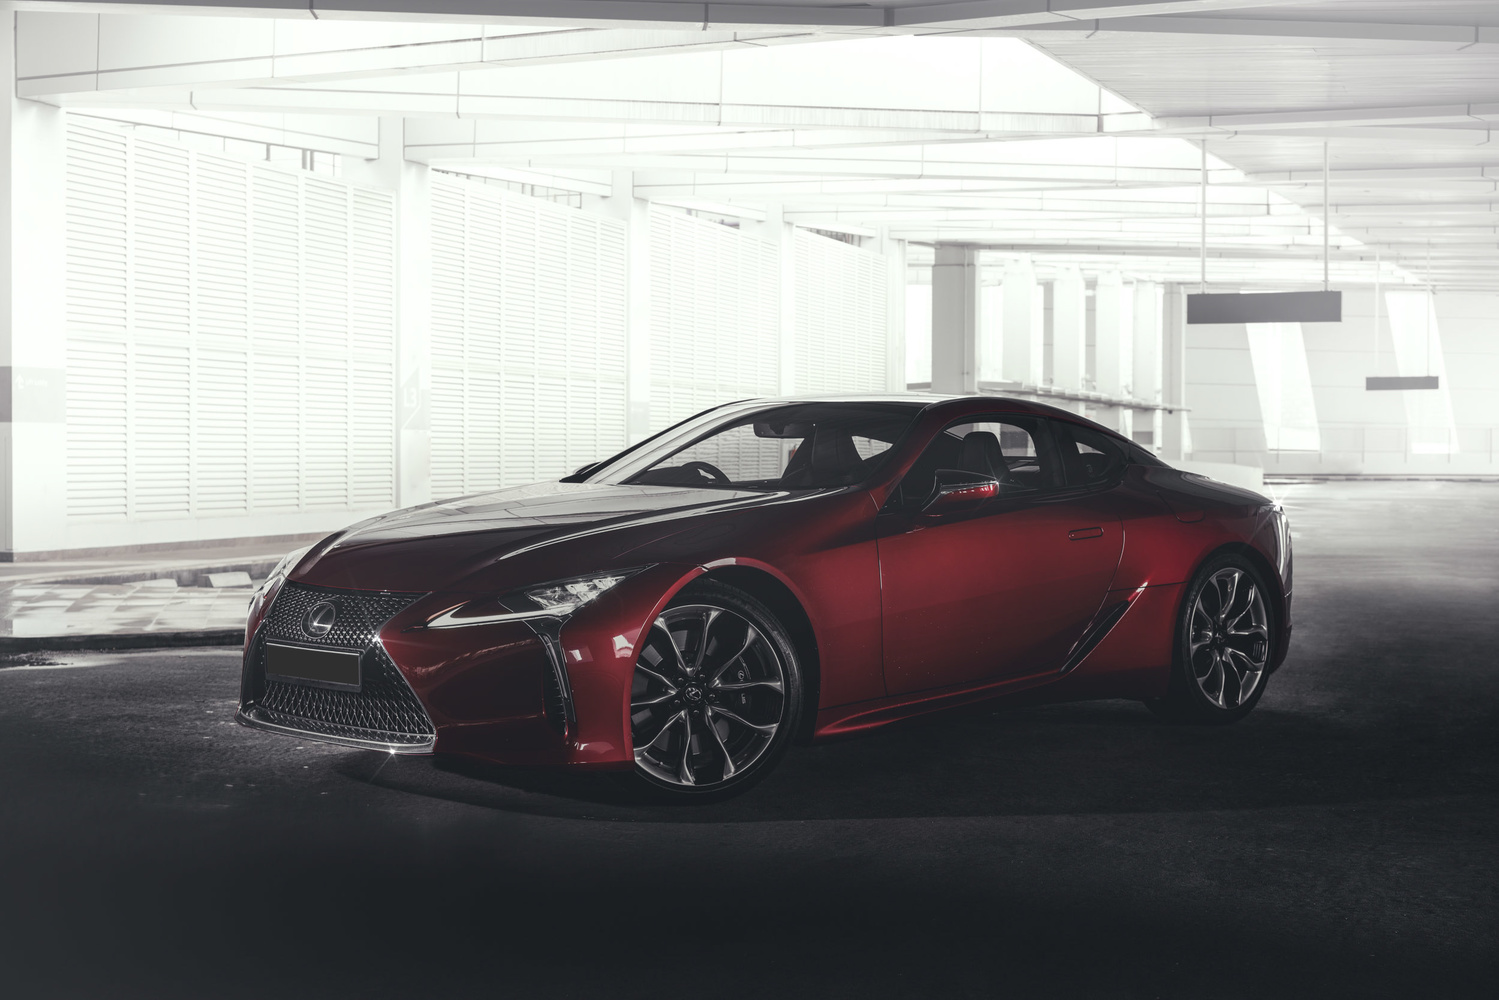 Eric Chen rr Lexus LC 500 image photograph after